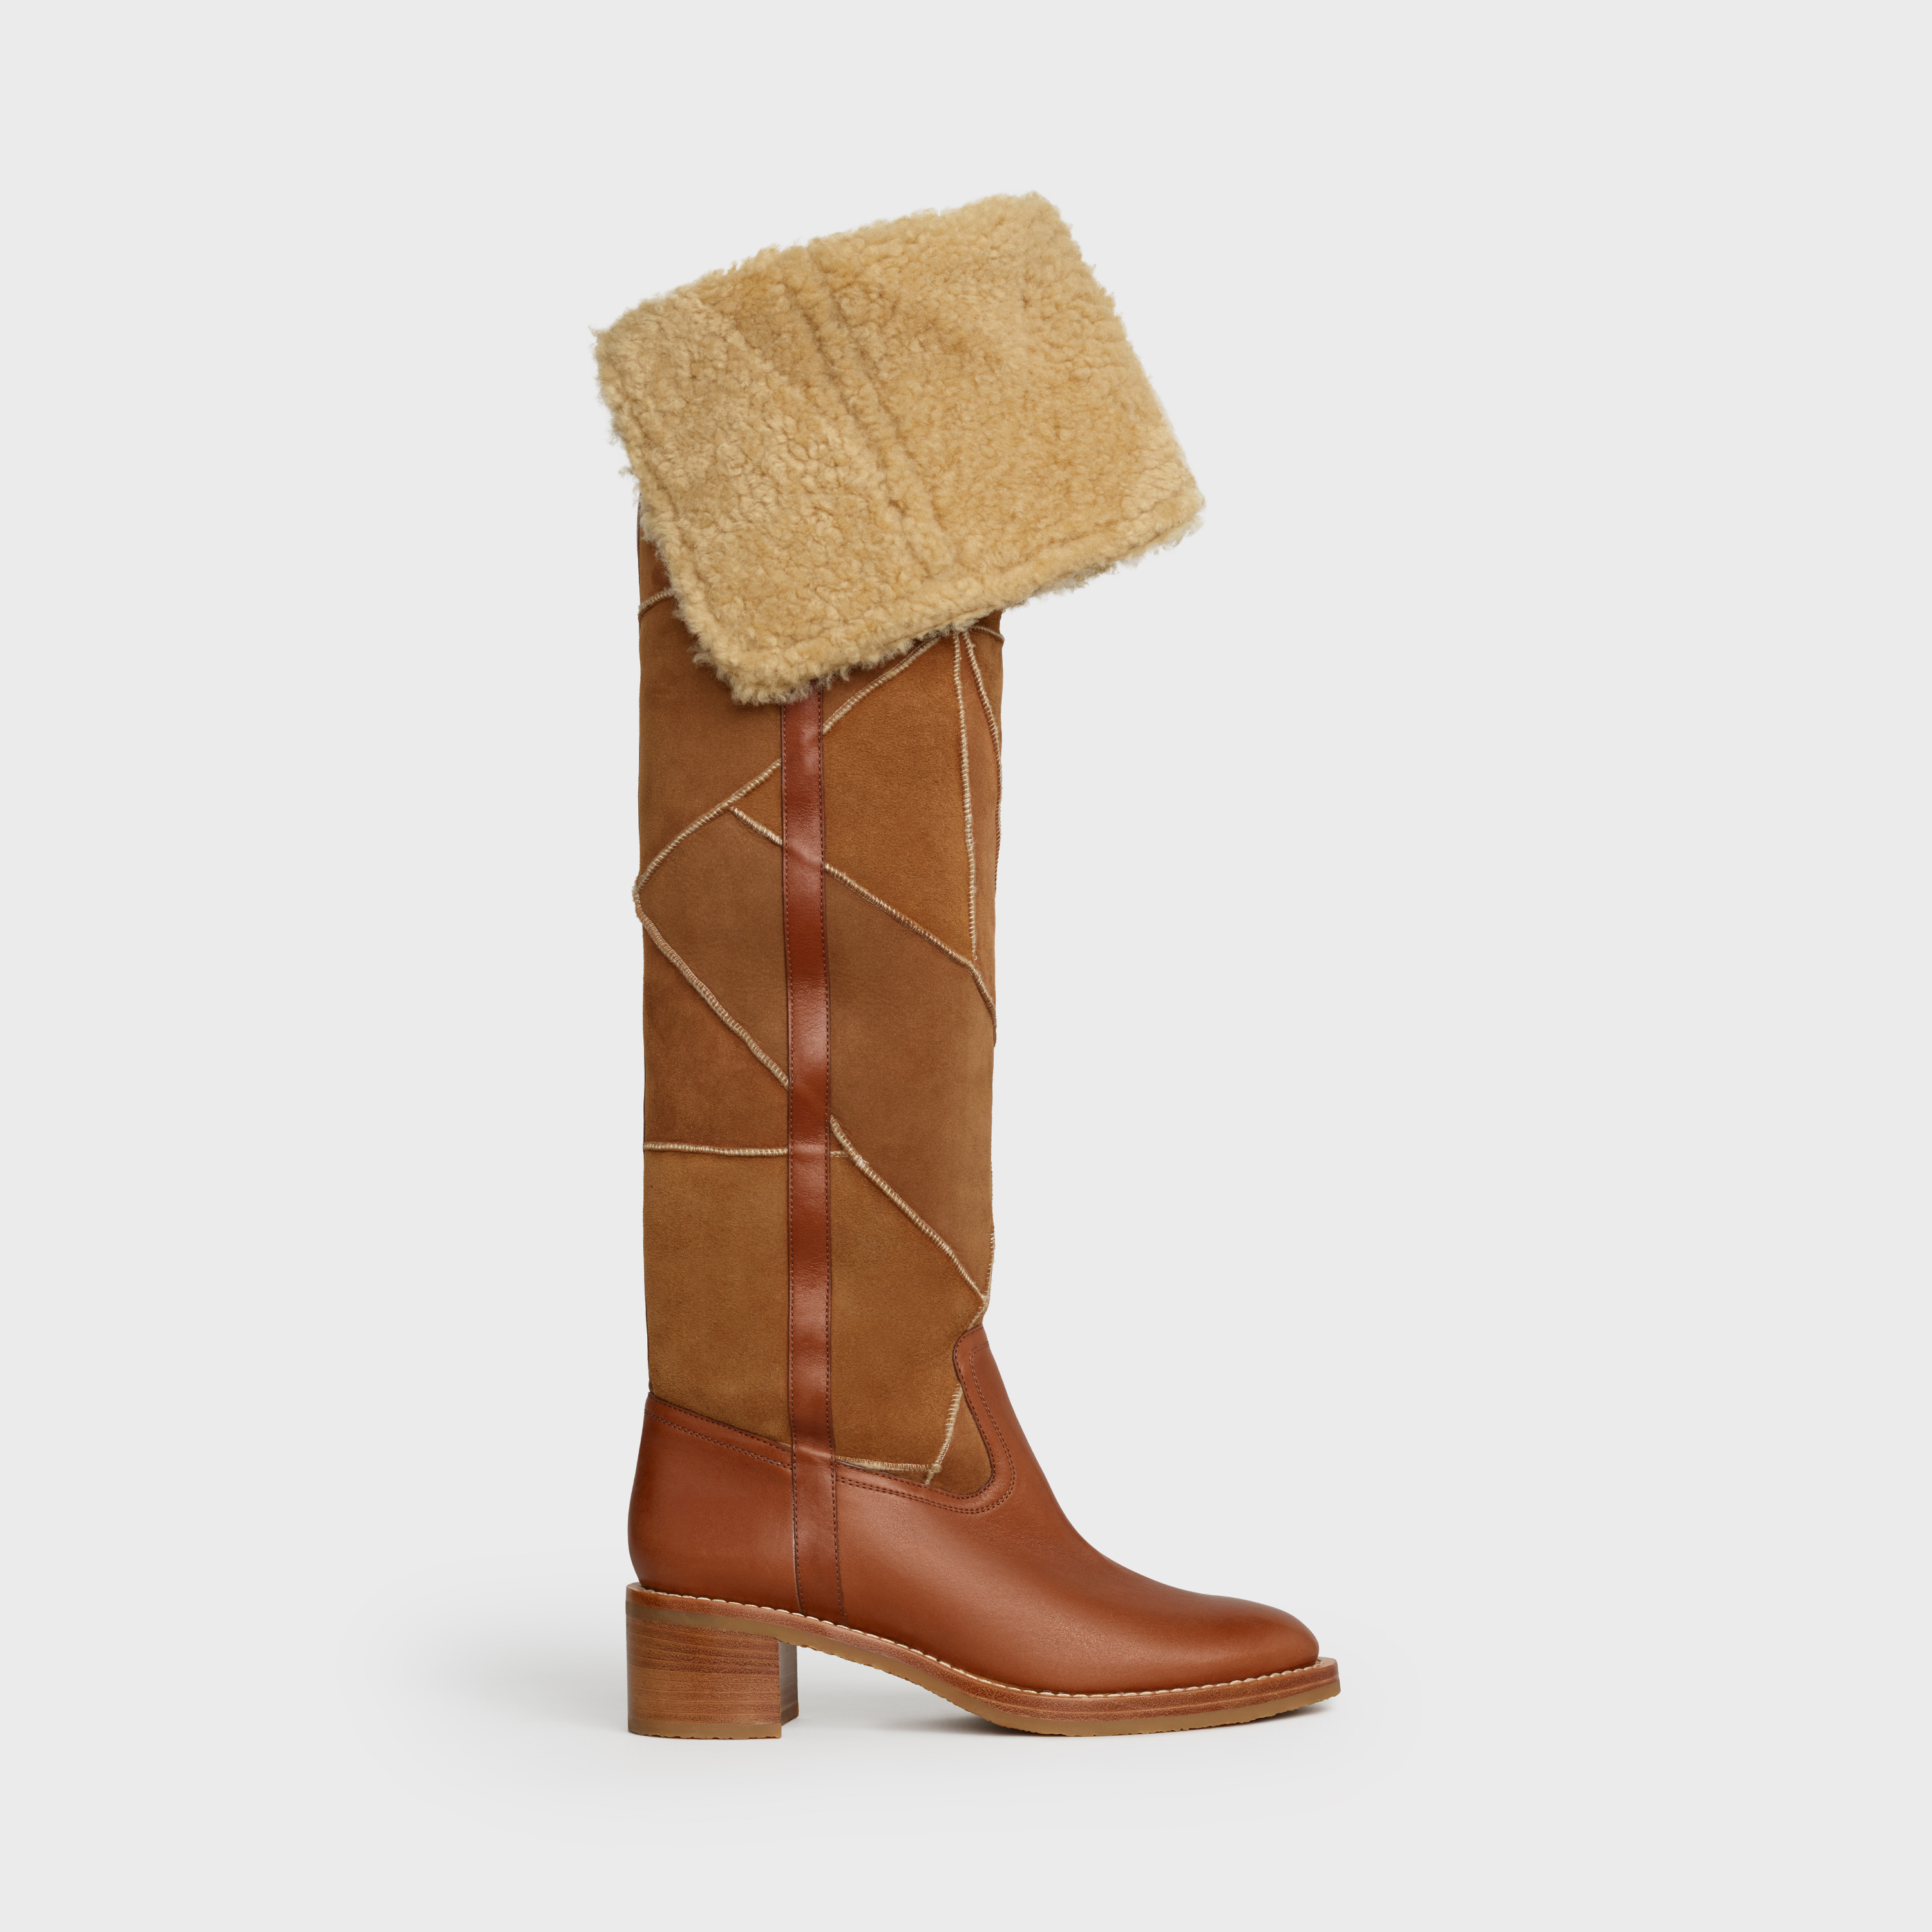 Celine Folco Over The Knee Boot in Lamb shearling Patchwork and Calfskin